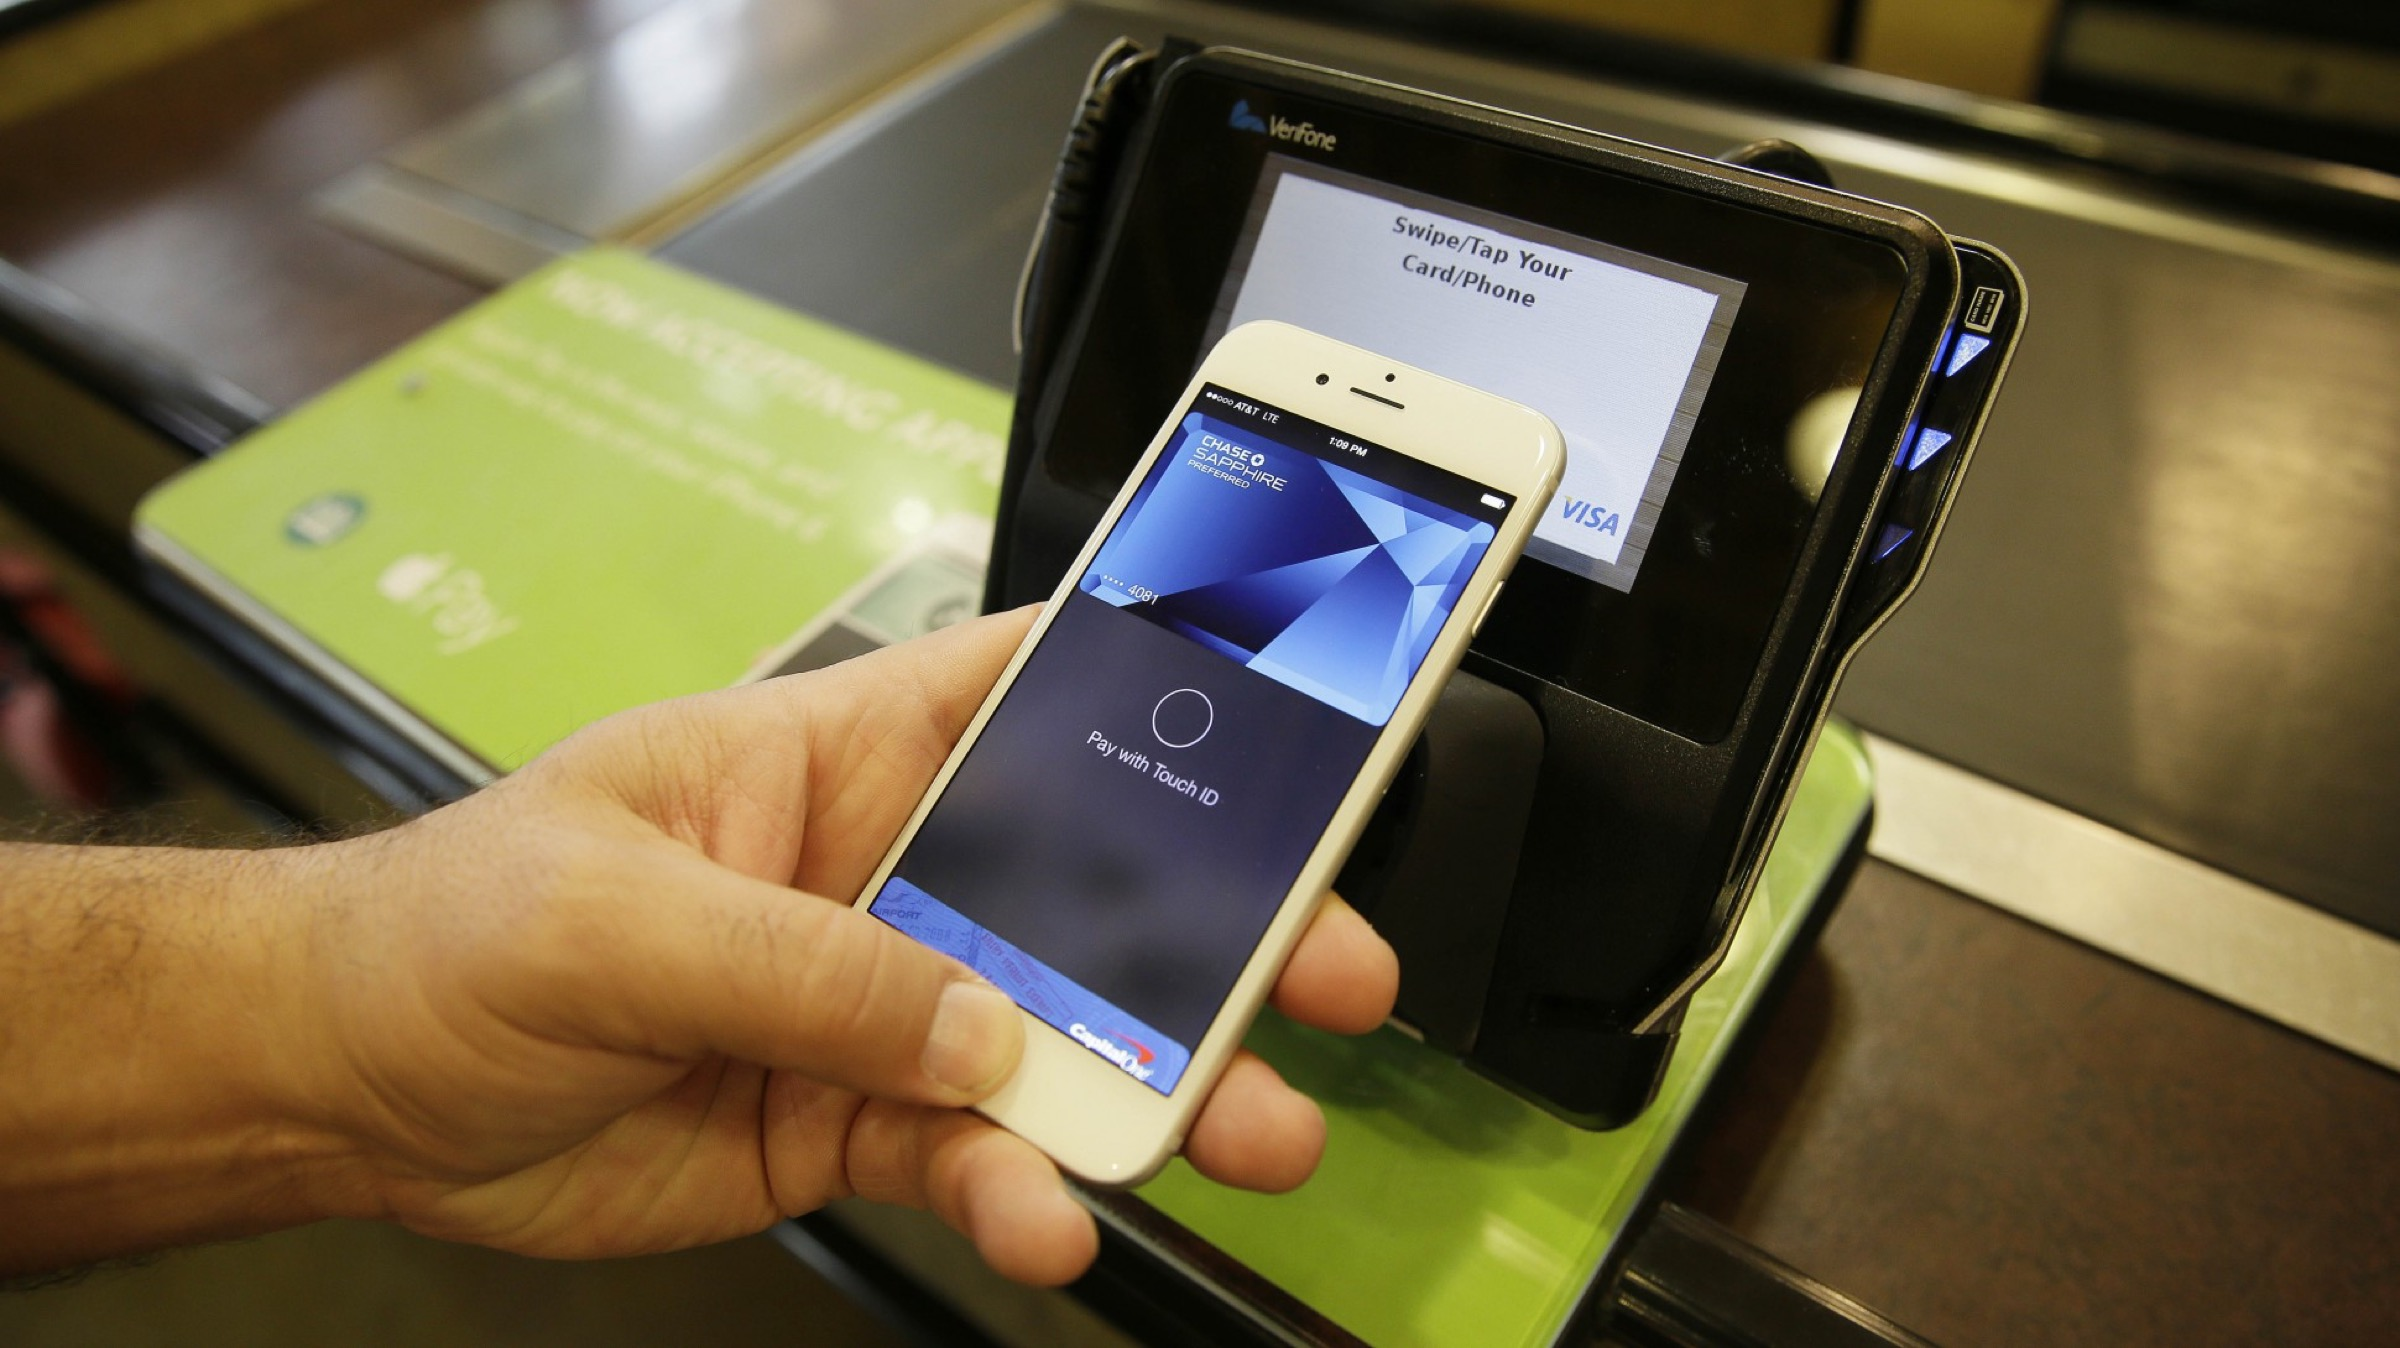 Whole Foods is offering an Apple Pay reward card, too